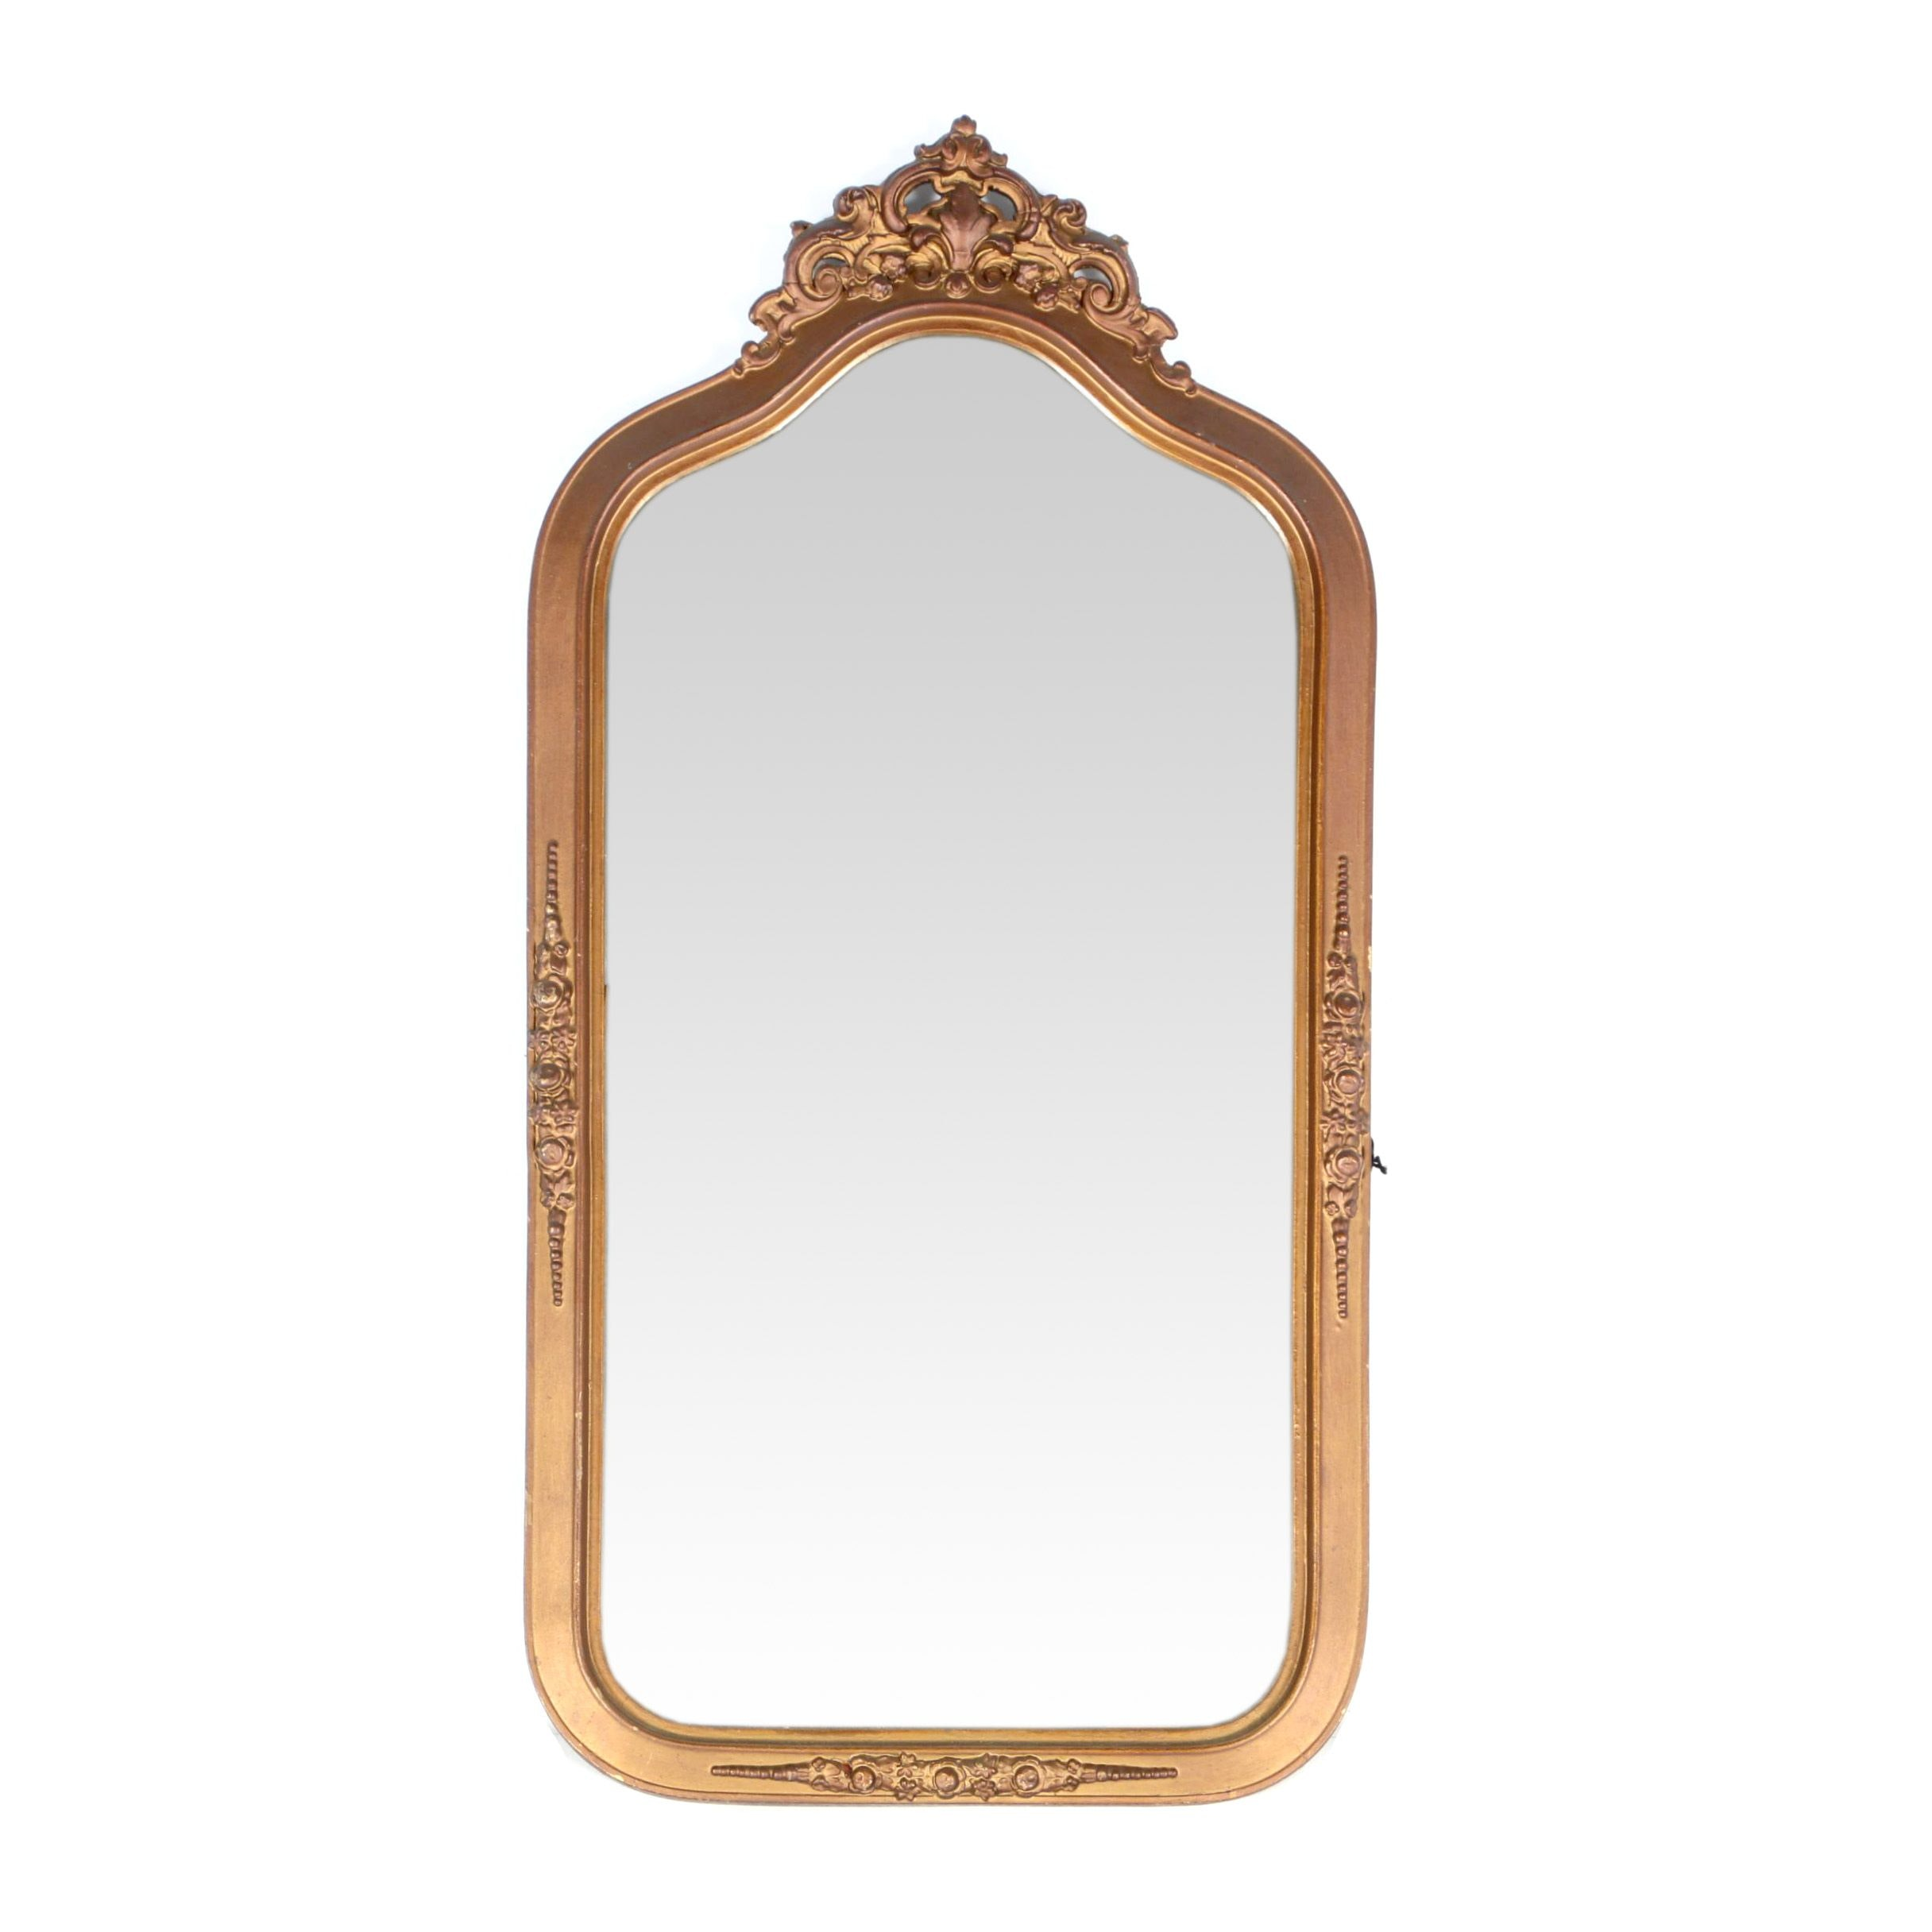 Antique Victorian Style Wall Mirror with Gold Tone Frame